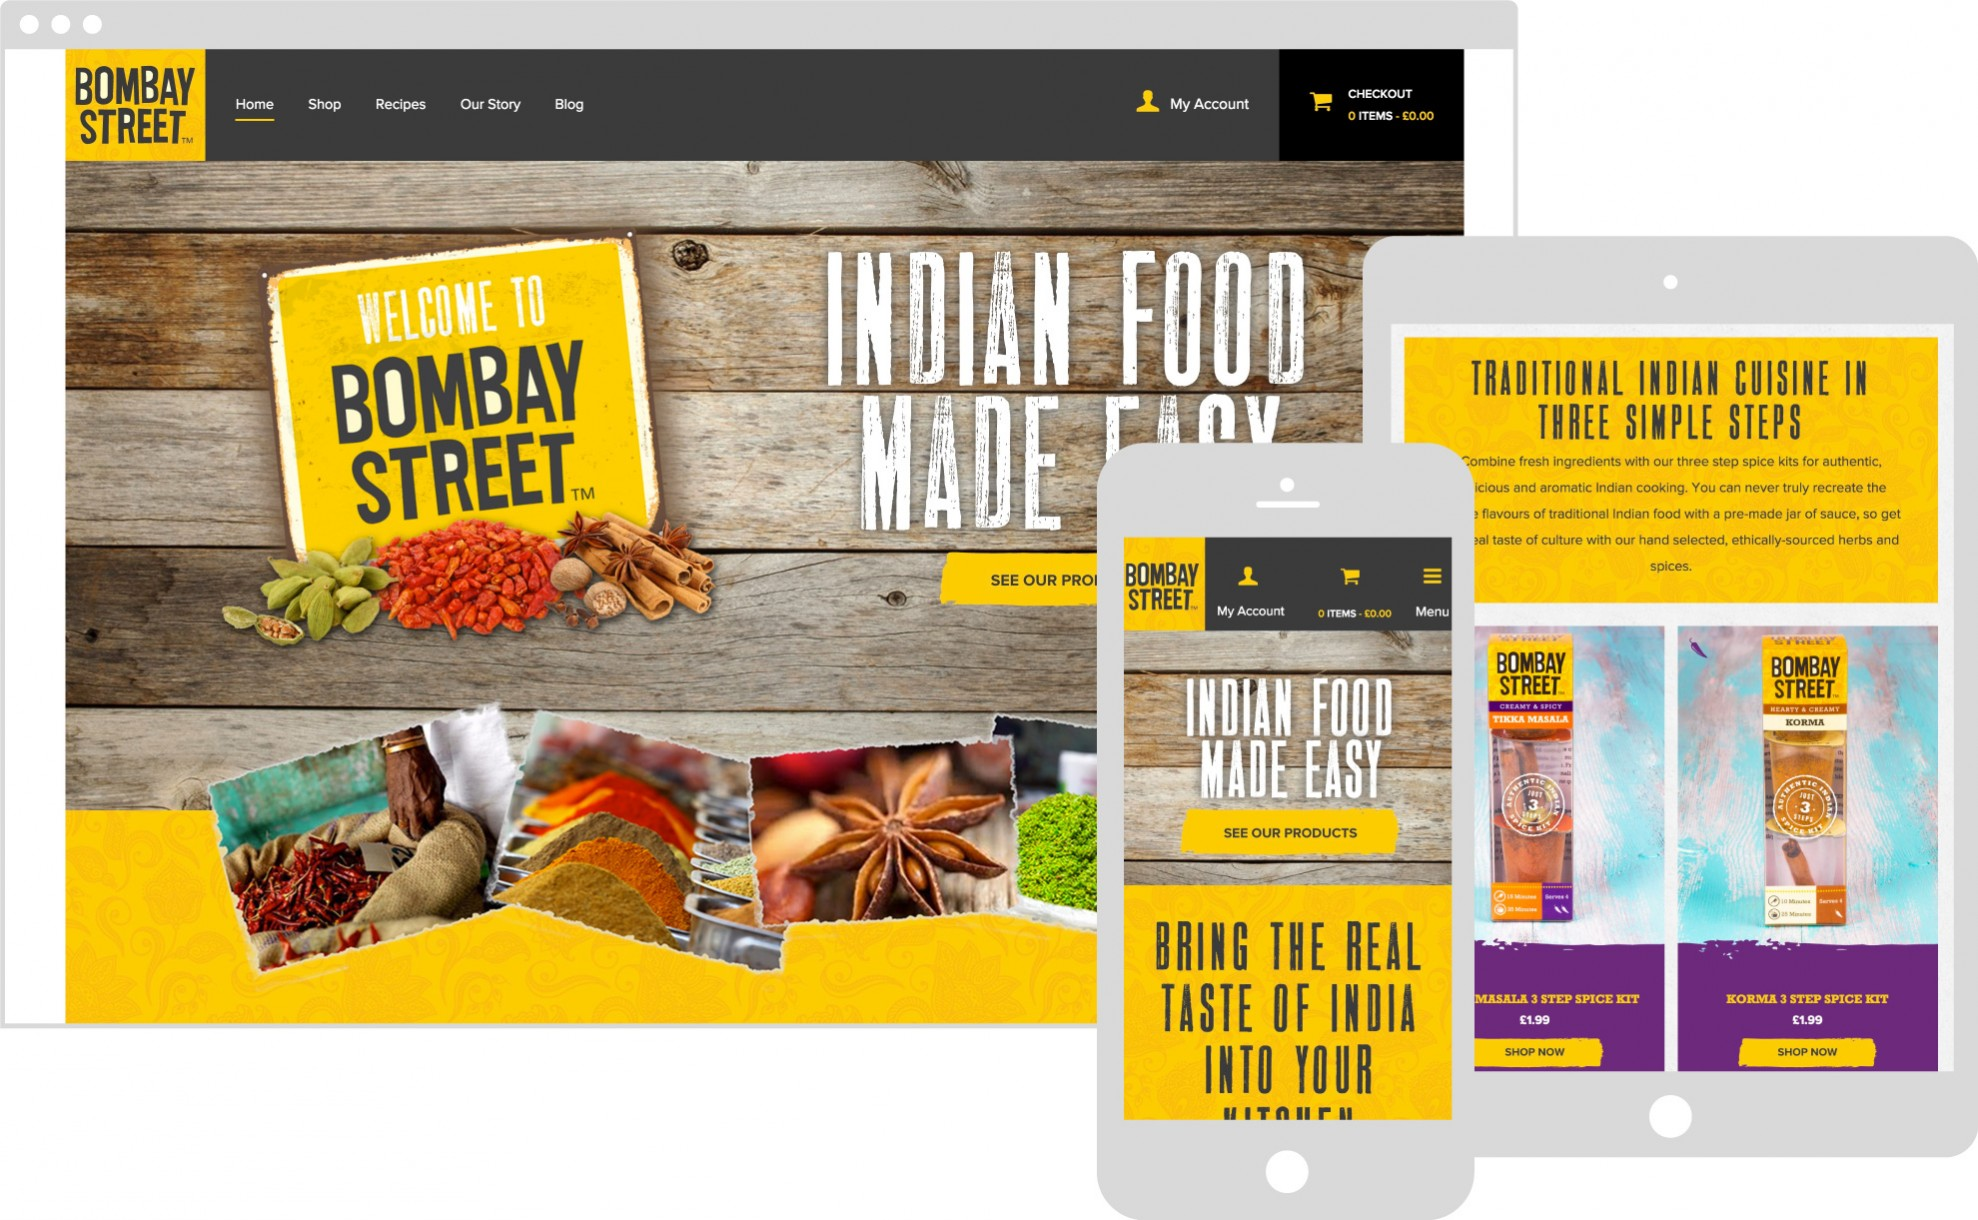 Bombay street website featured on multiple devices